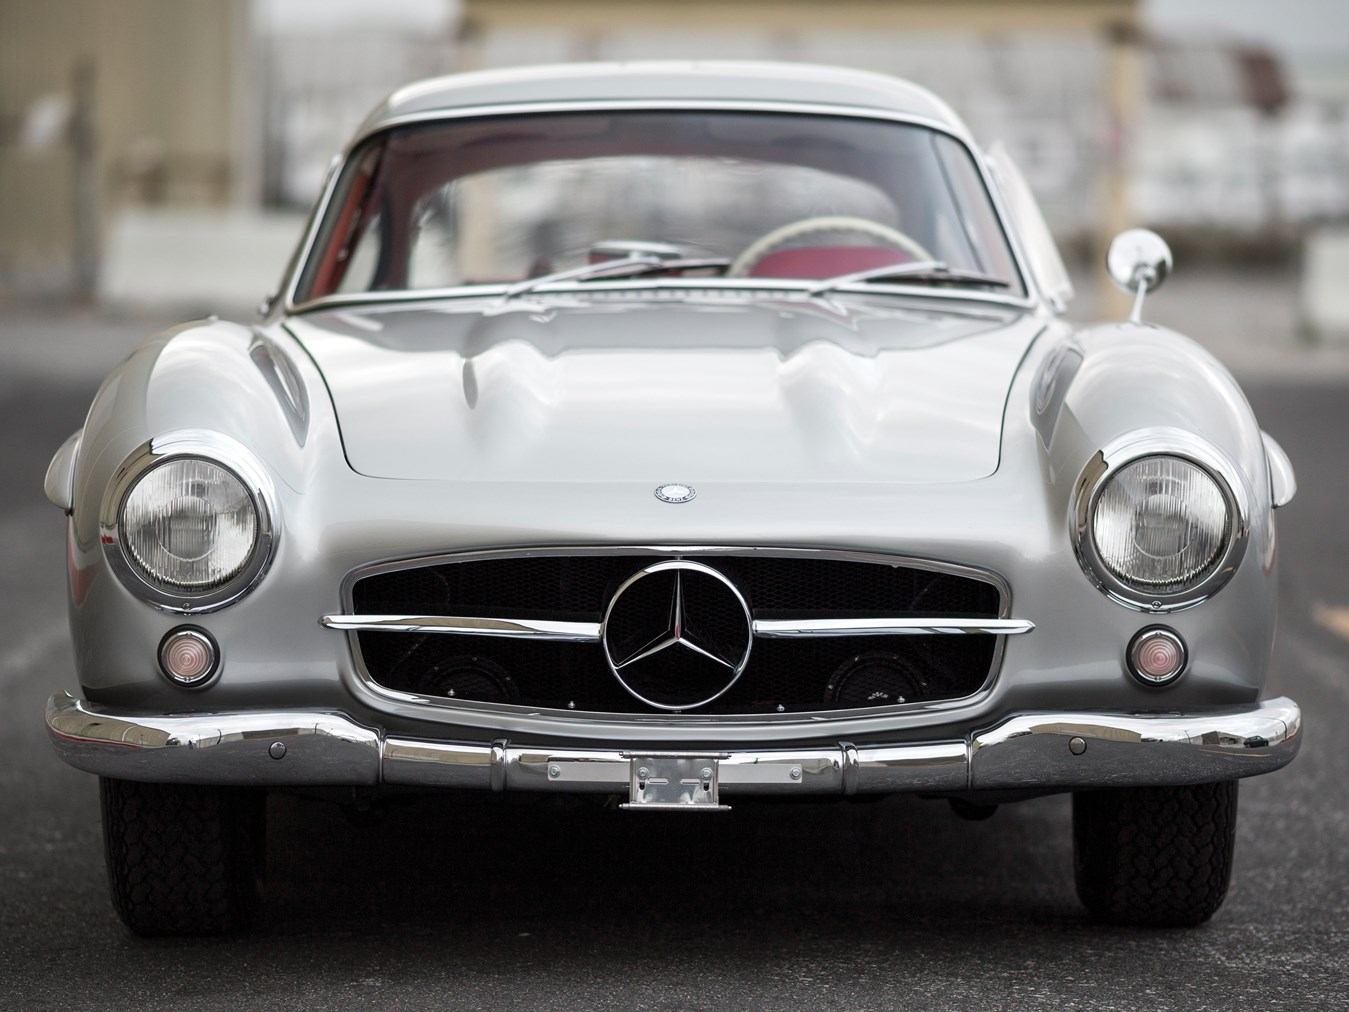 Rm sotheby 39 s r170 1955 mercedes benz 300 sl alloy gullwing for 1955 mercedes benz 300sl